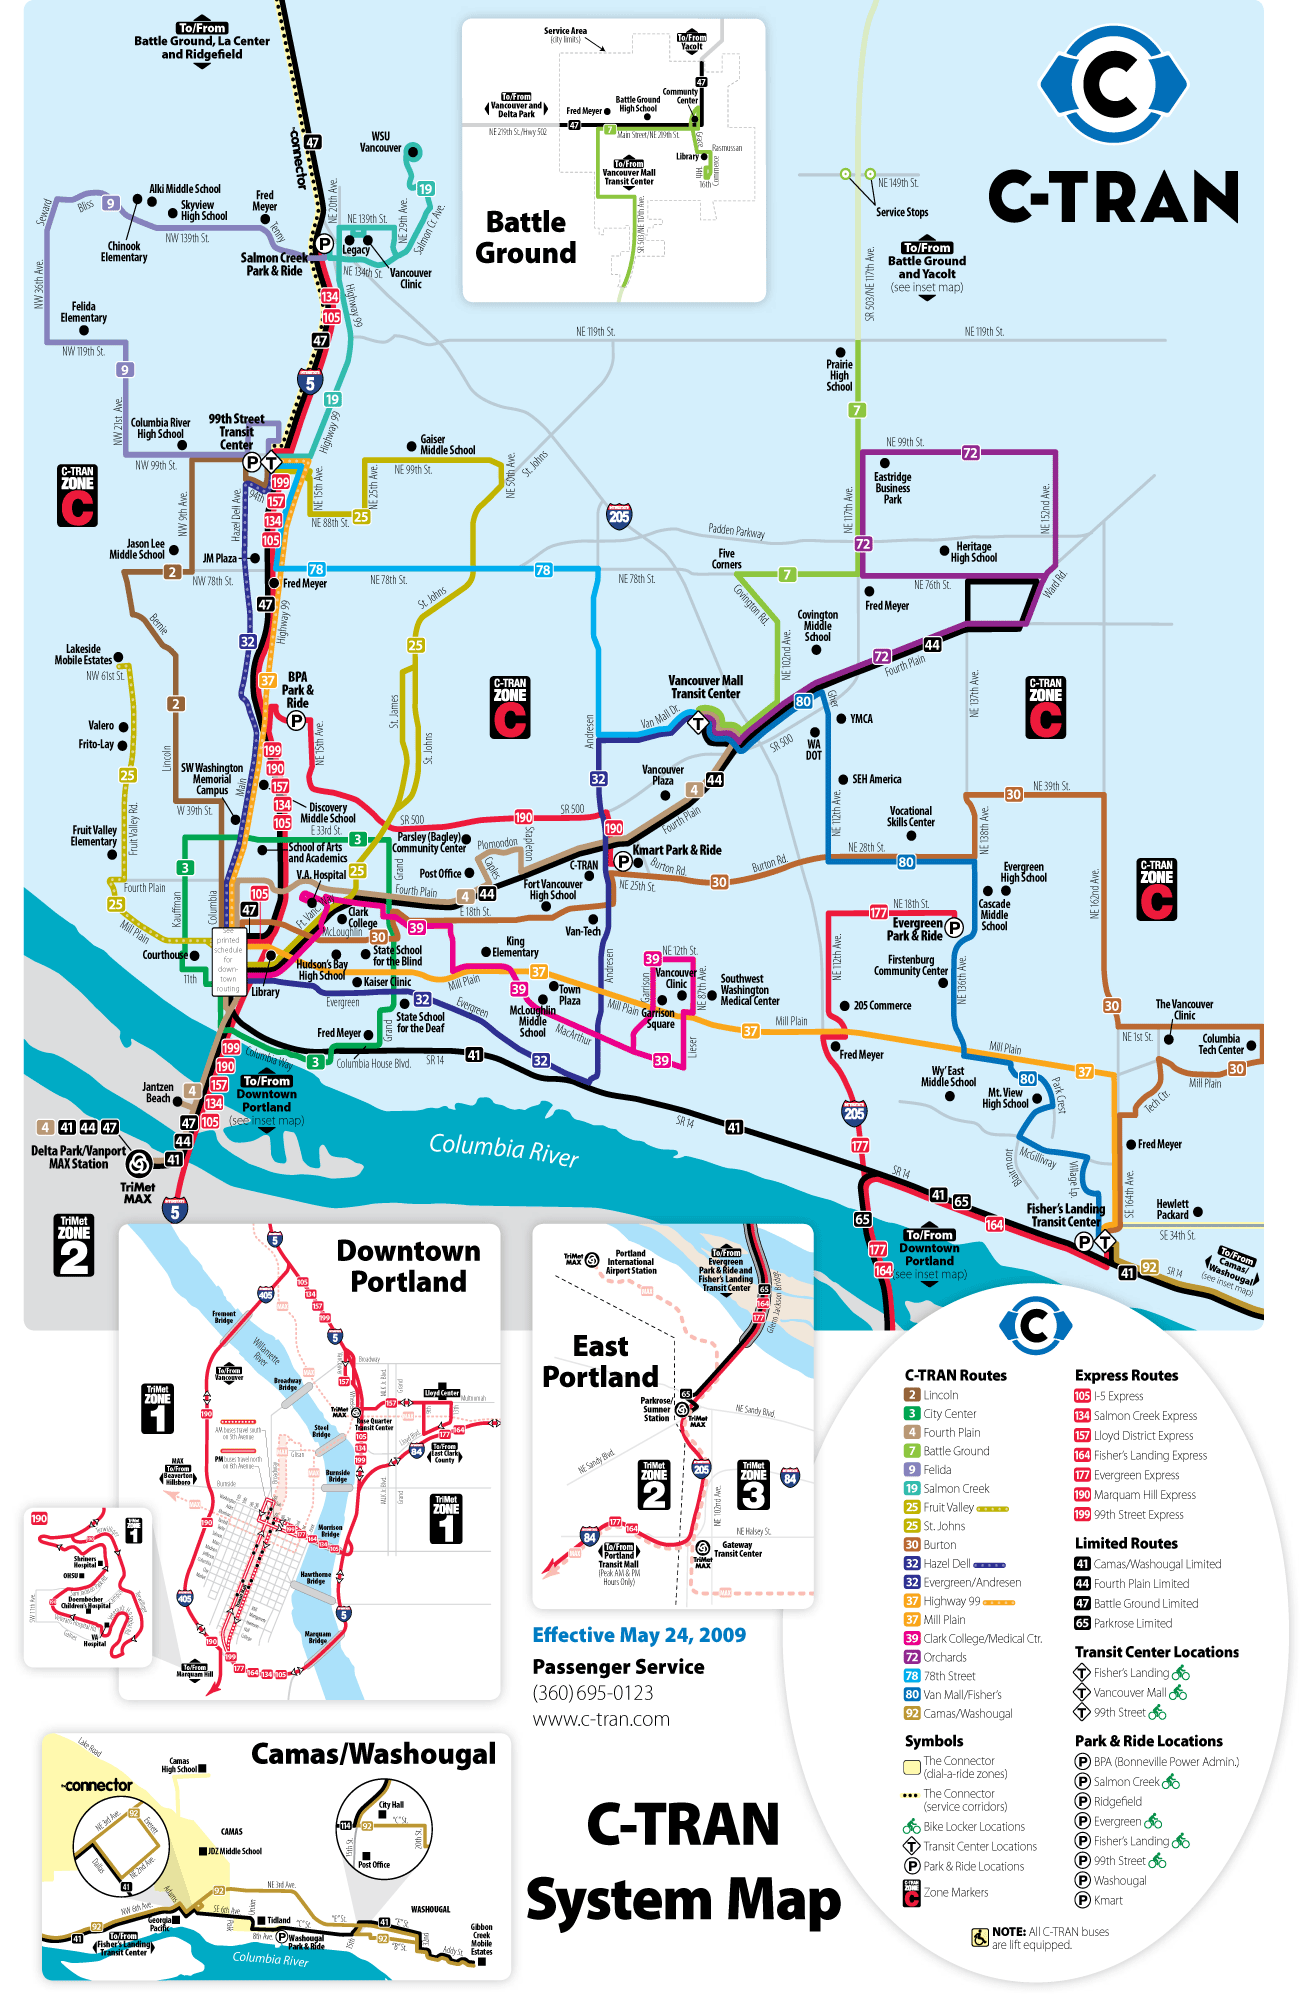 Vancouver Light Rail Map (c Train) • Mapsof.net on